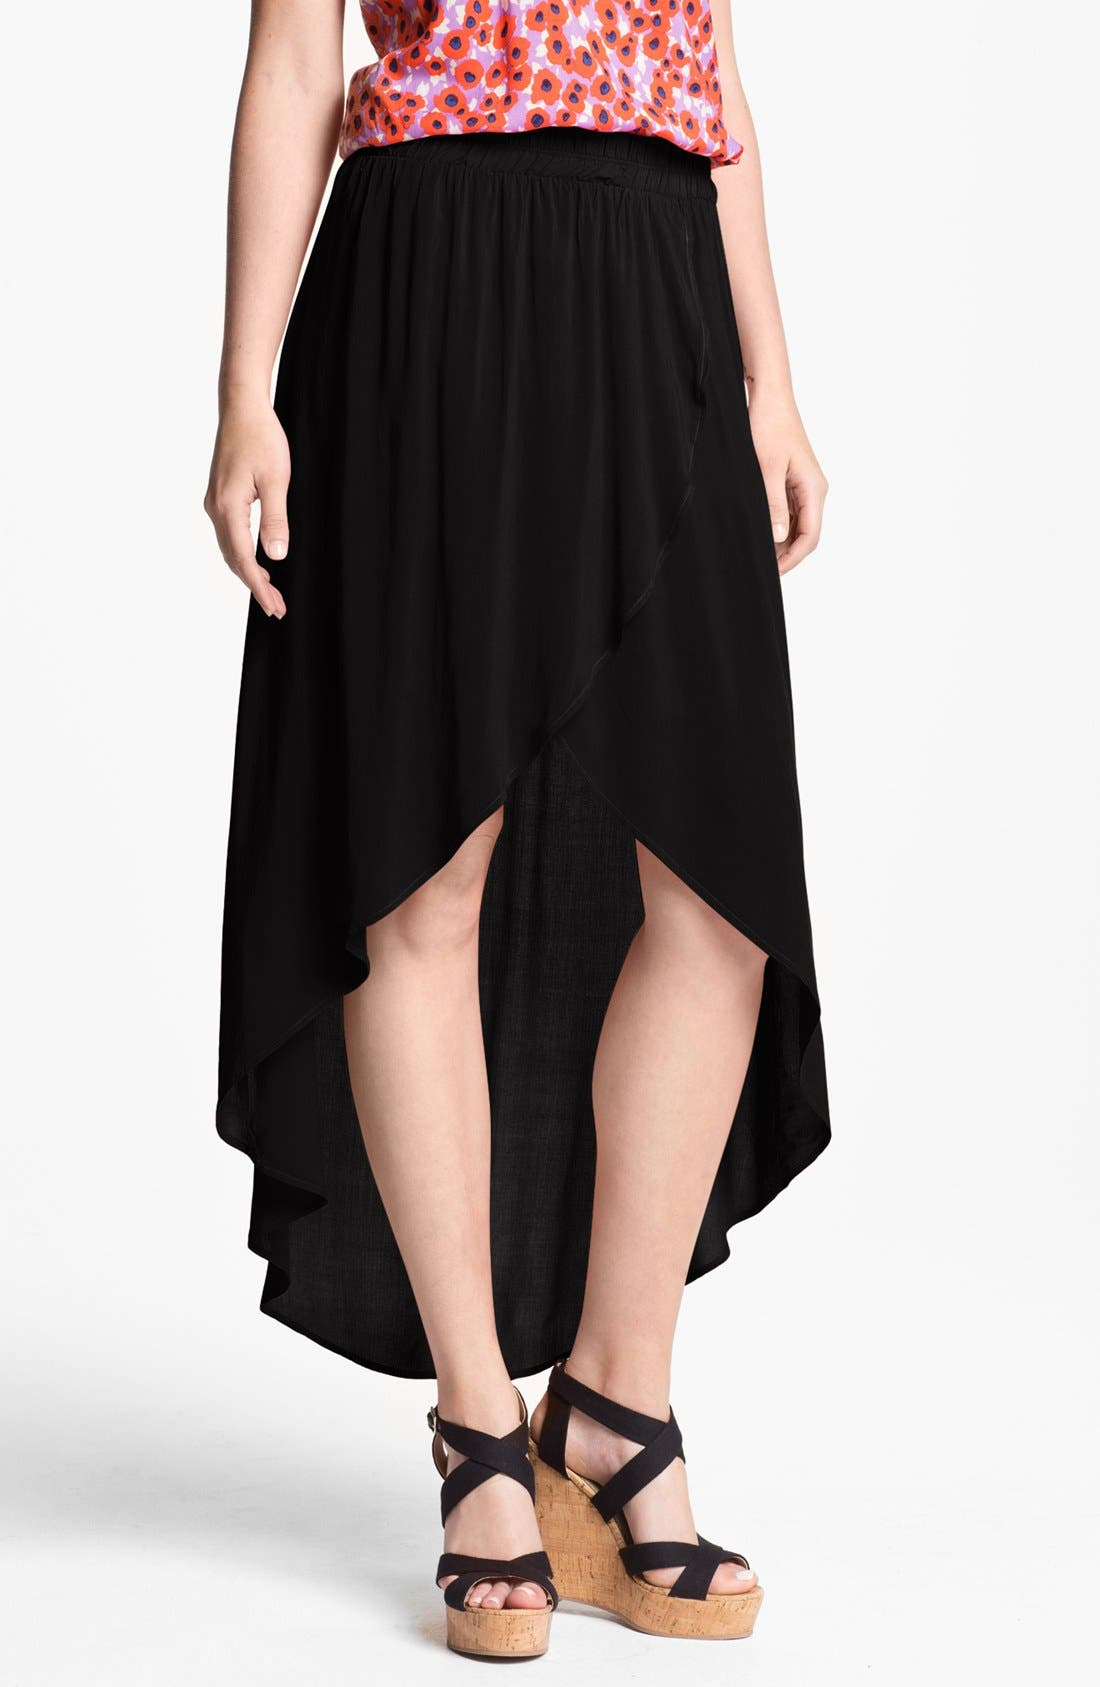 Alternate Image 1 Selected - Splendid High/Low Faux Wrap Skirt